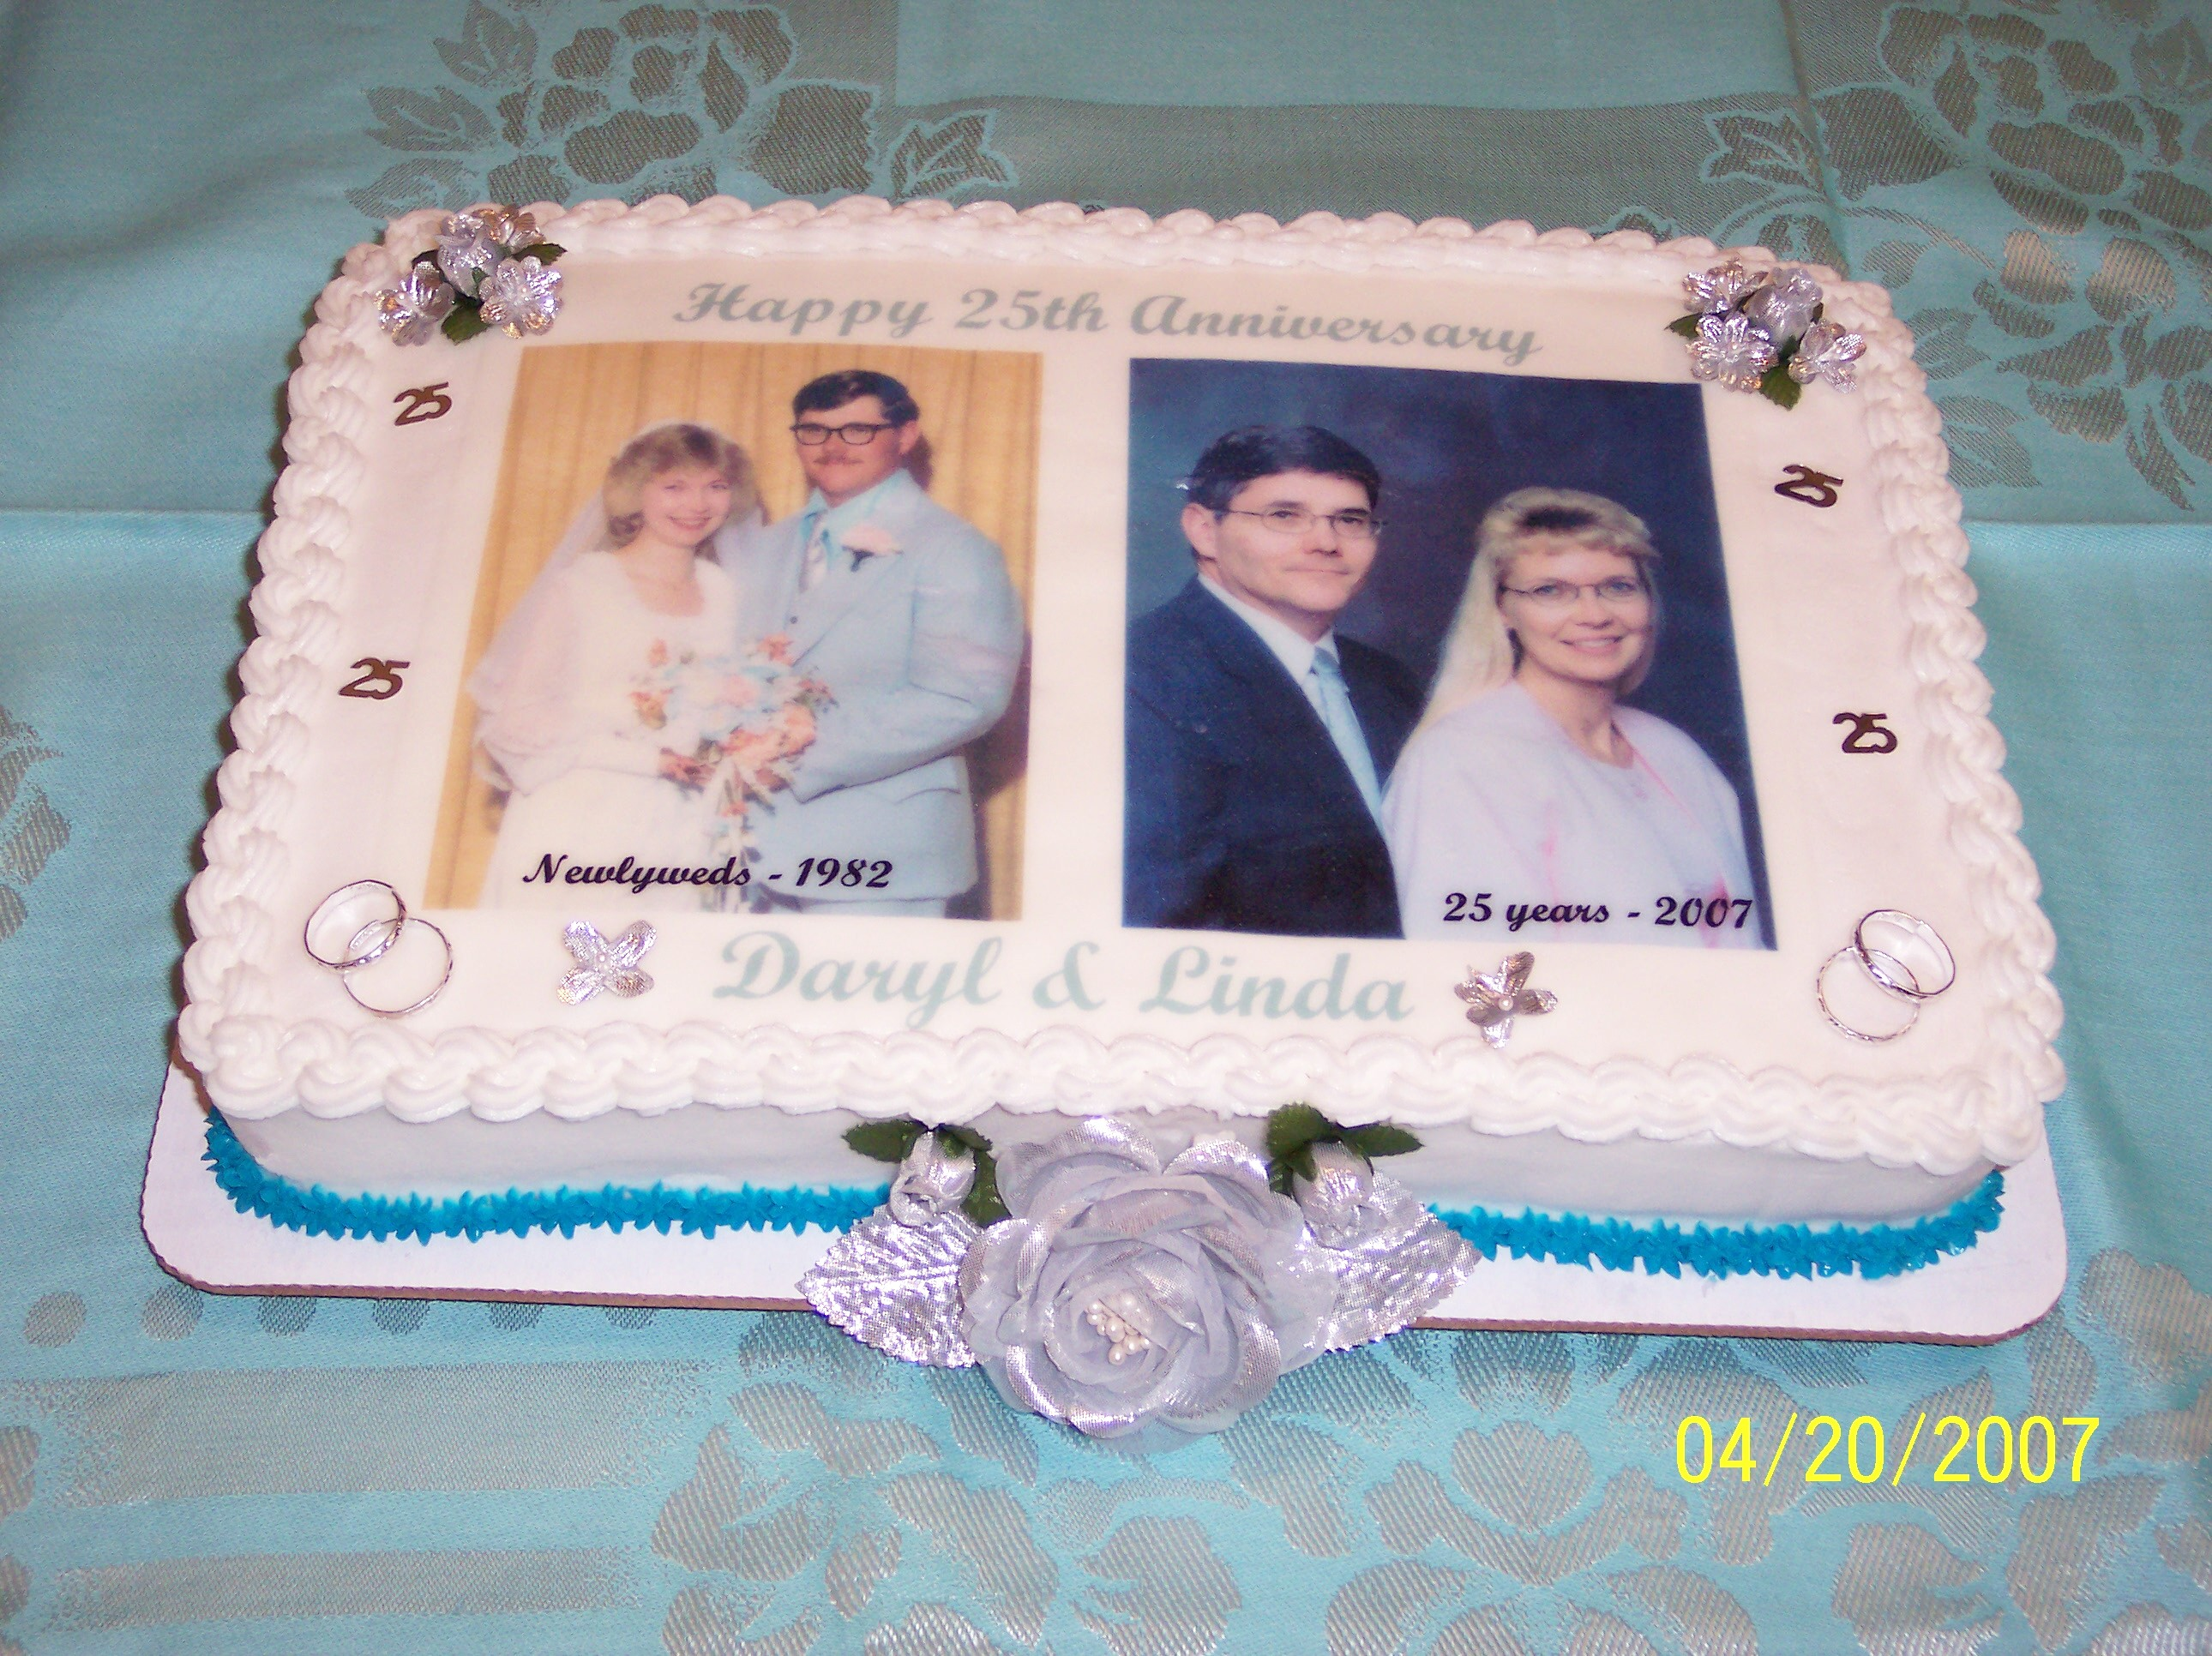 Our 25th Anniversary Cake